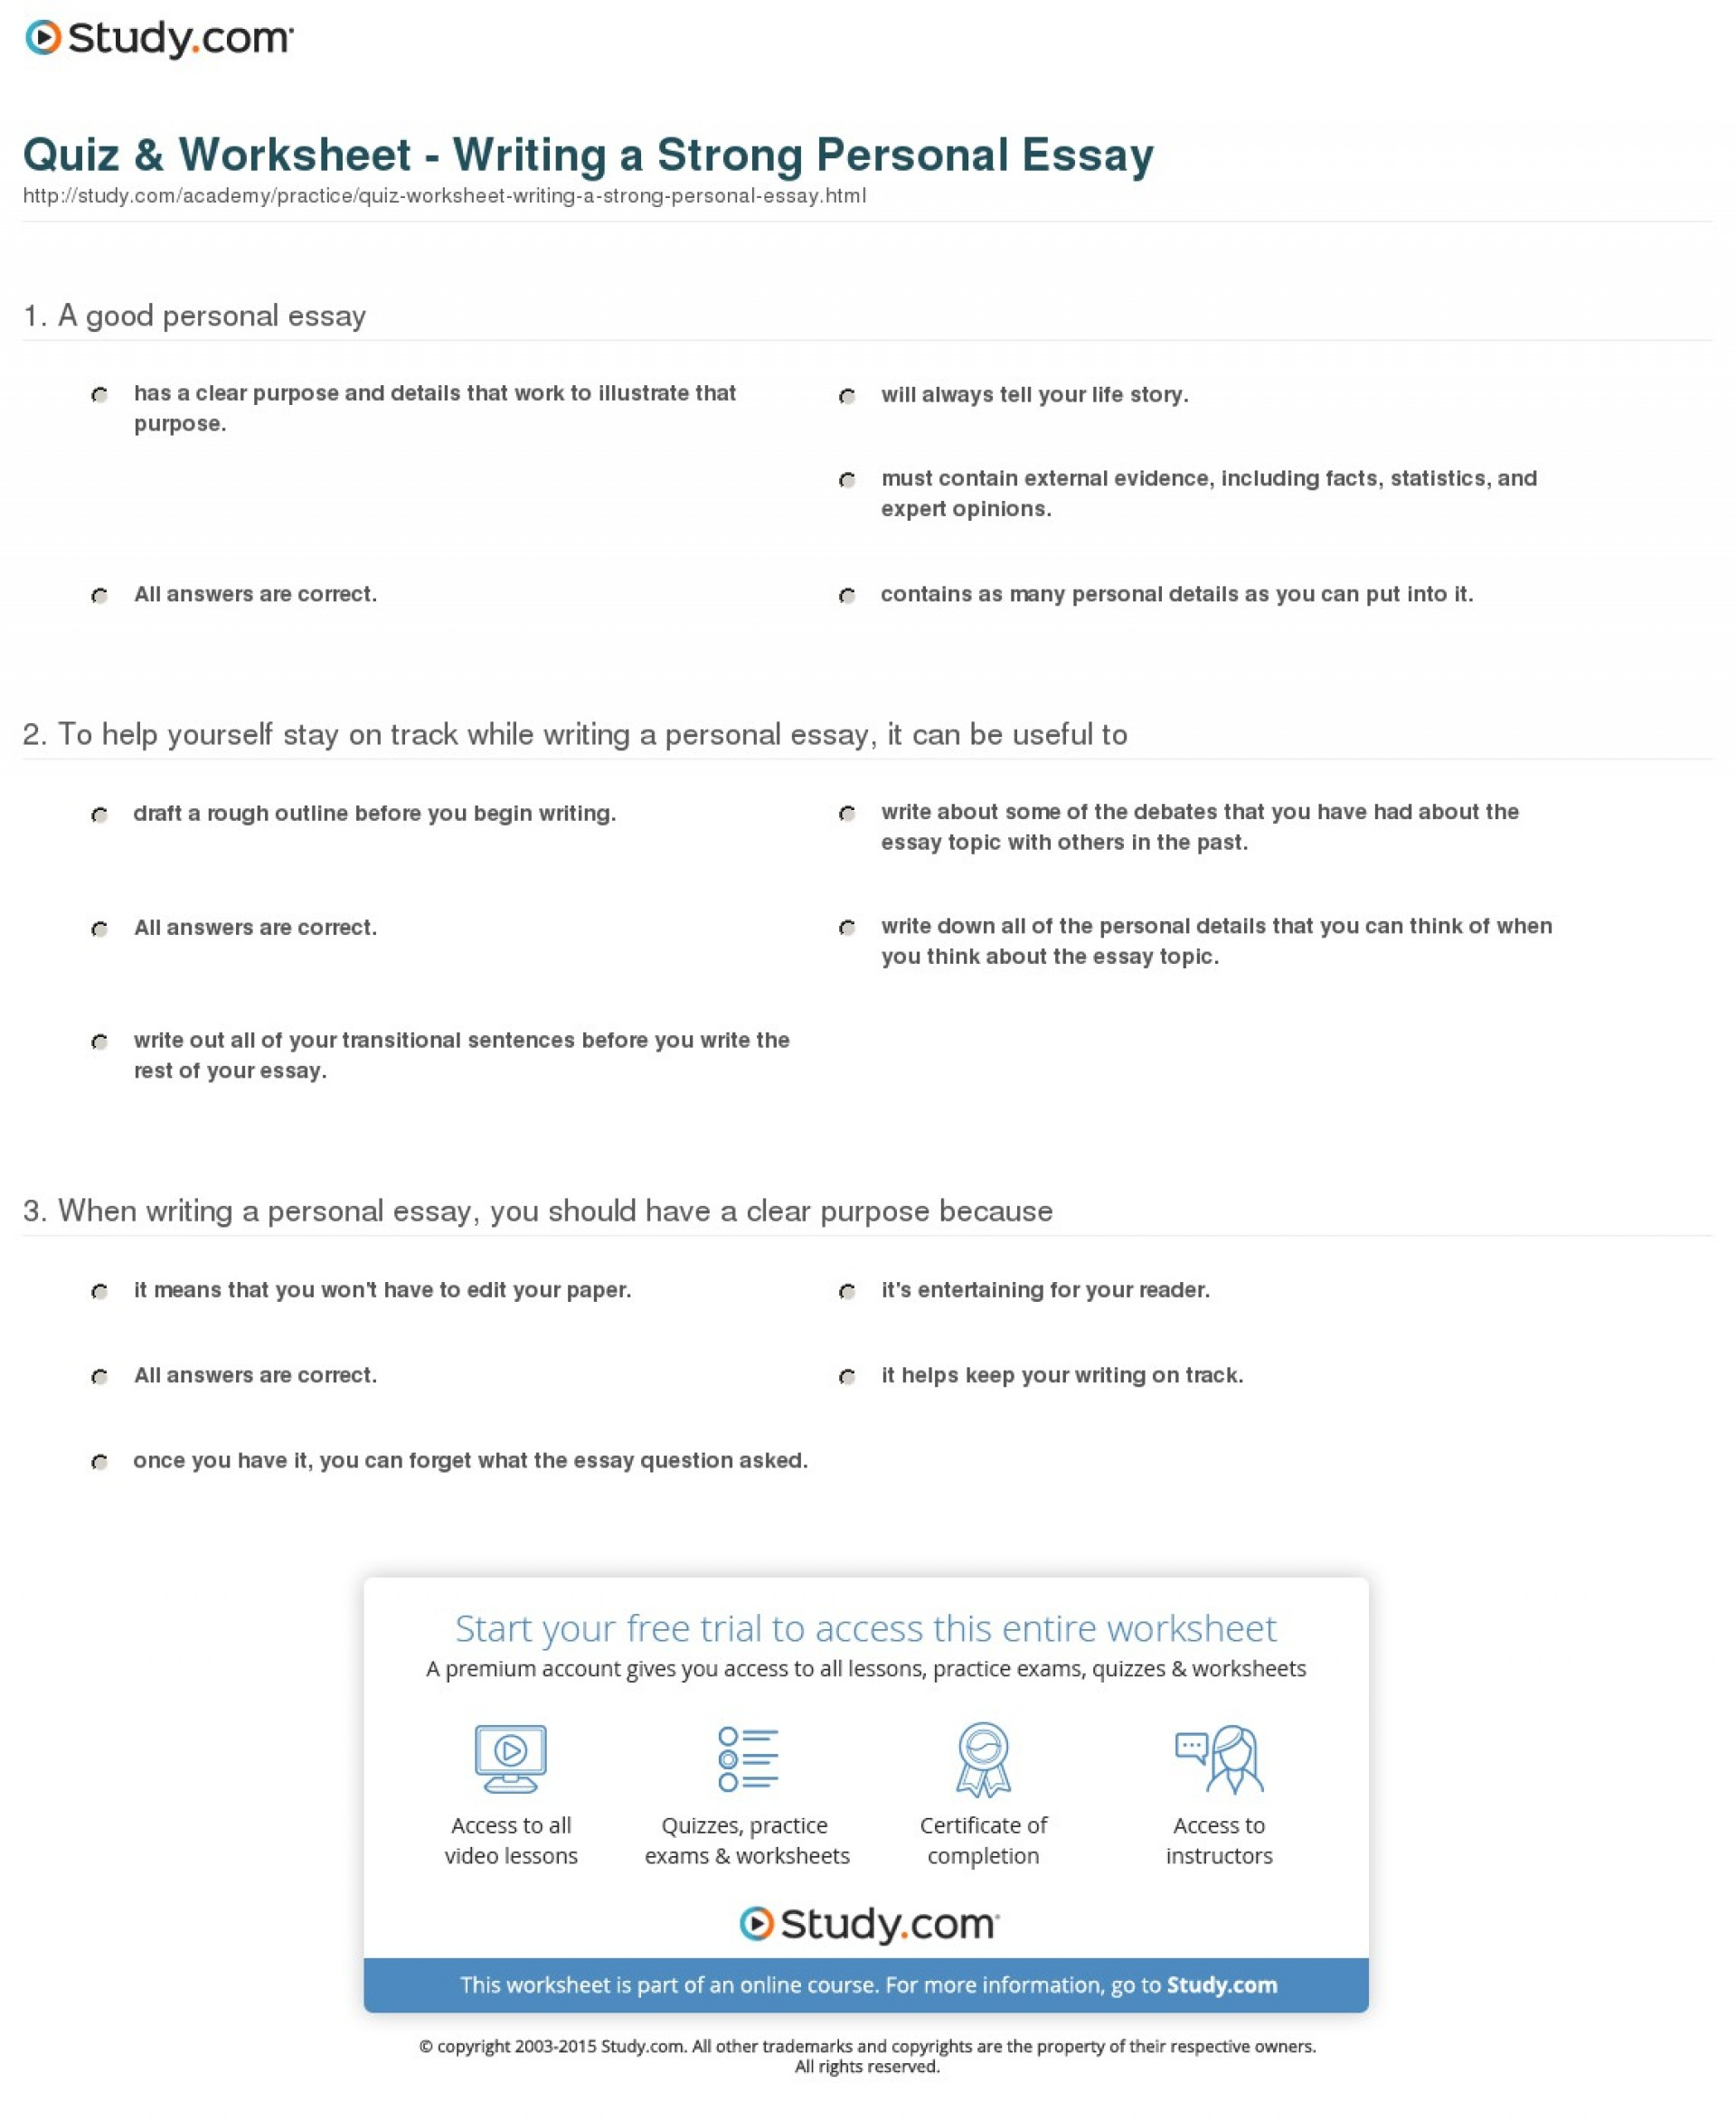 024 Quiz Worksheet Writing Strong Personal Essay What Is The Purpose Of An Wonderful Introduction In Brainly Outline For Argumentative With A Focus On Division-classification 1920